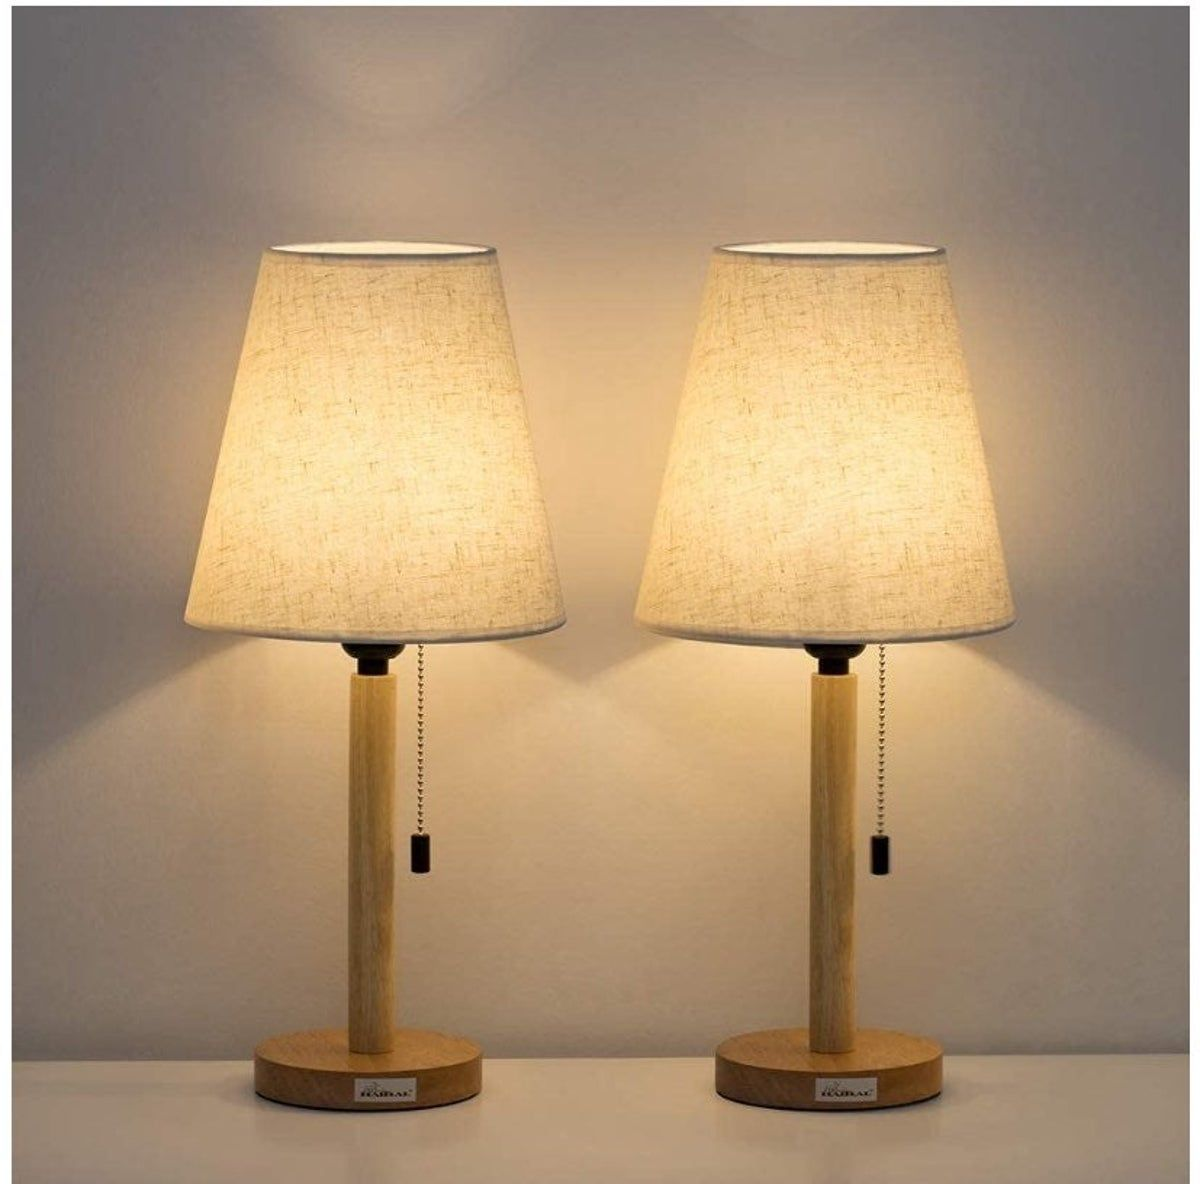 Table Lamp Set Of 2 With Wooden Base Table Lamp Wooden Table Lamps Modern Nightstand Lamps